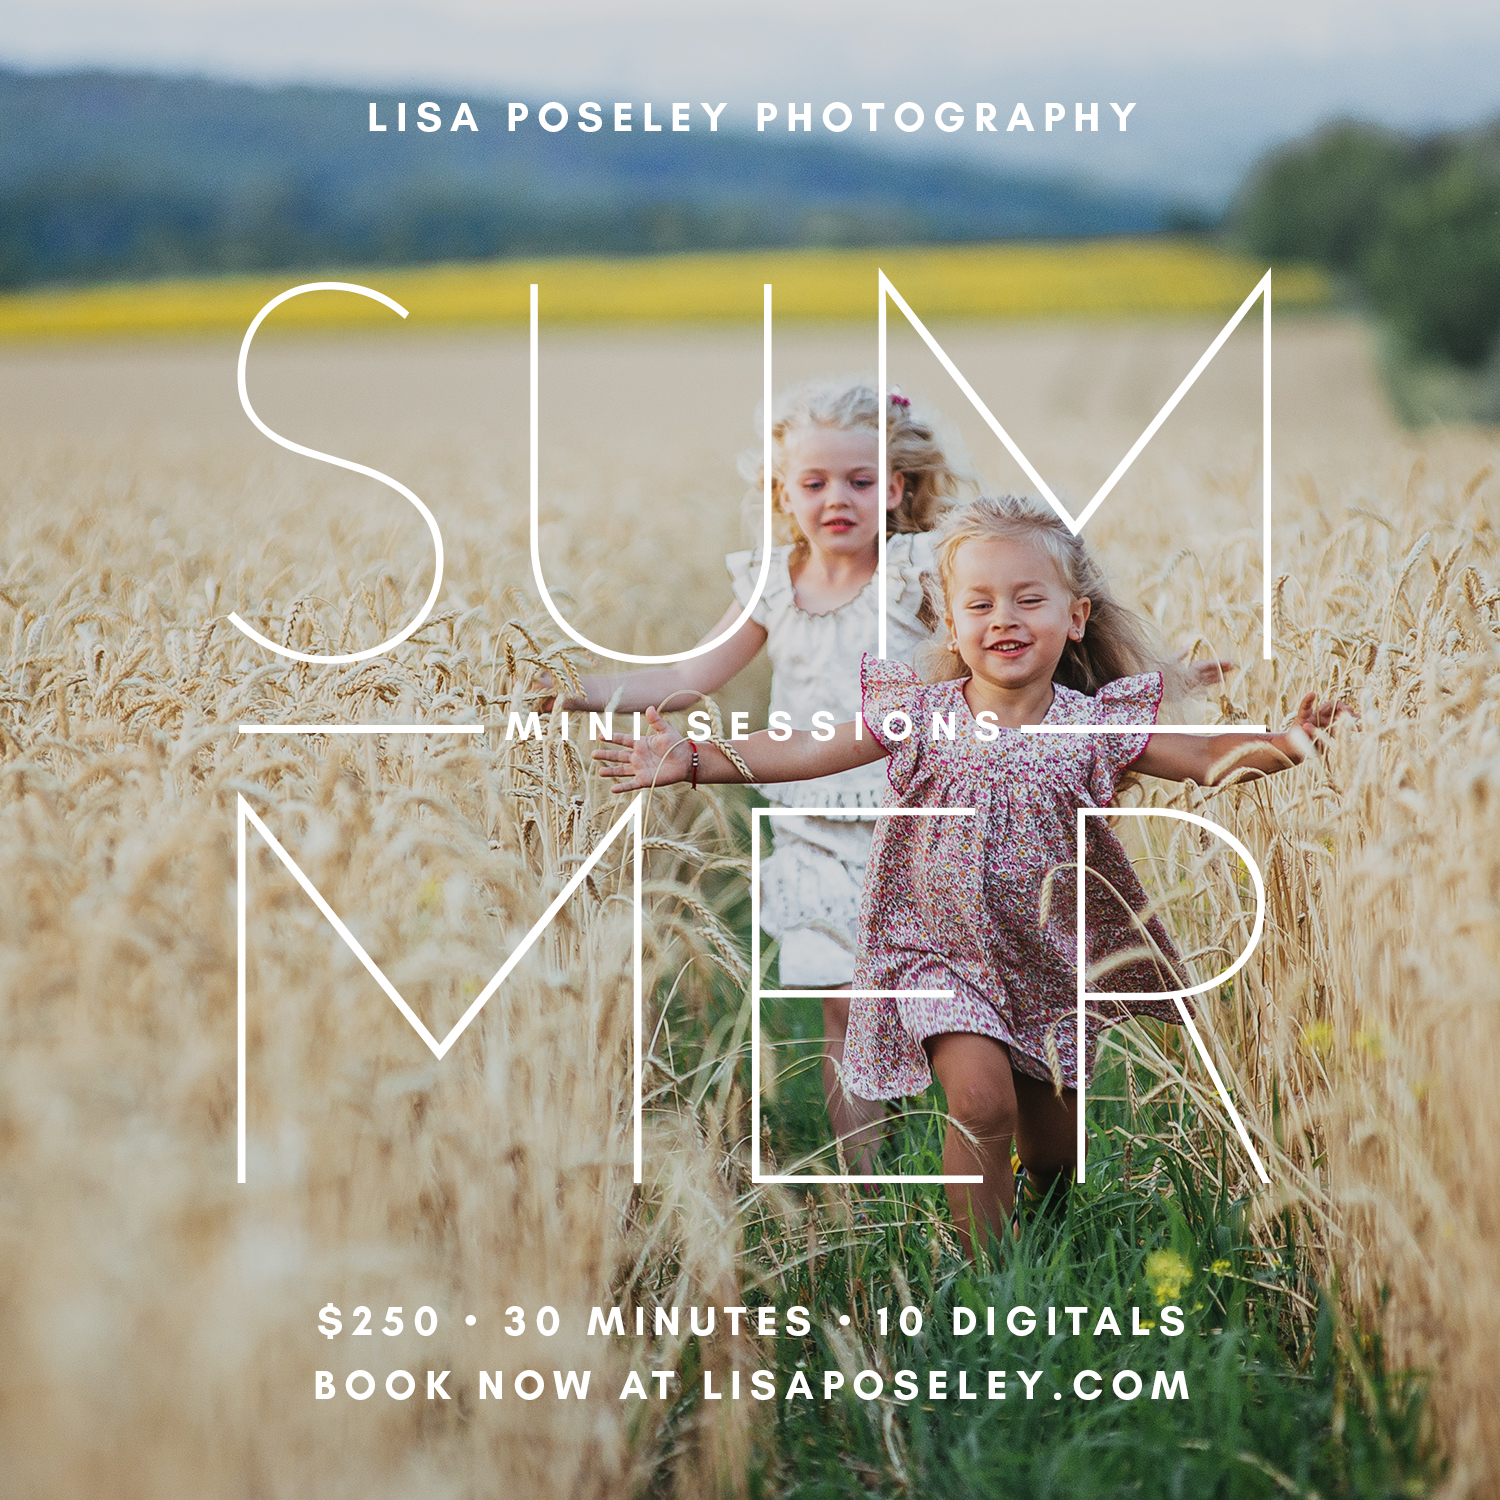 Summer Mini Session with Lisa Poseley Photography ©2019